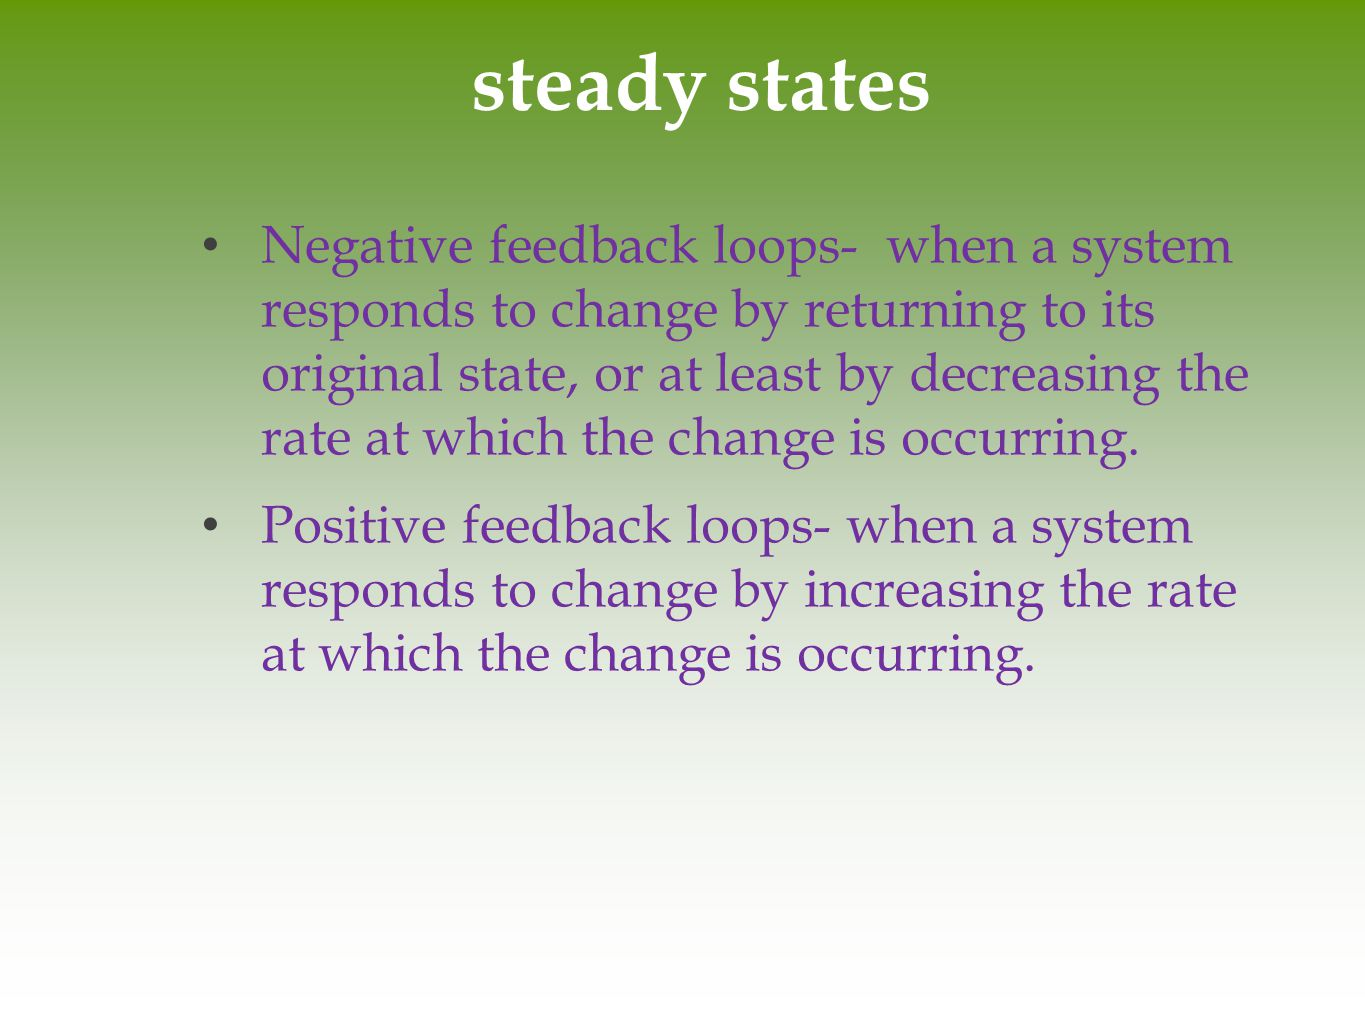 steady states Negative feedback loops- when a system responds to change by returning to its original state, or at least by decreasing the rate at whic